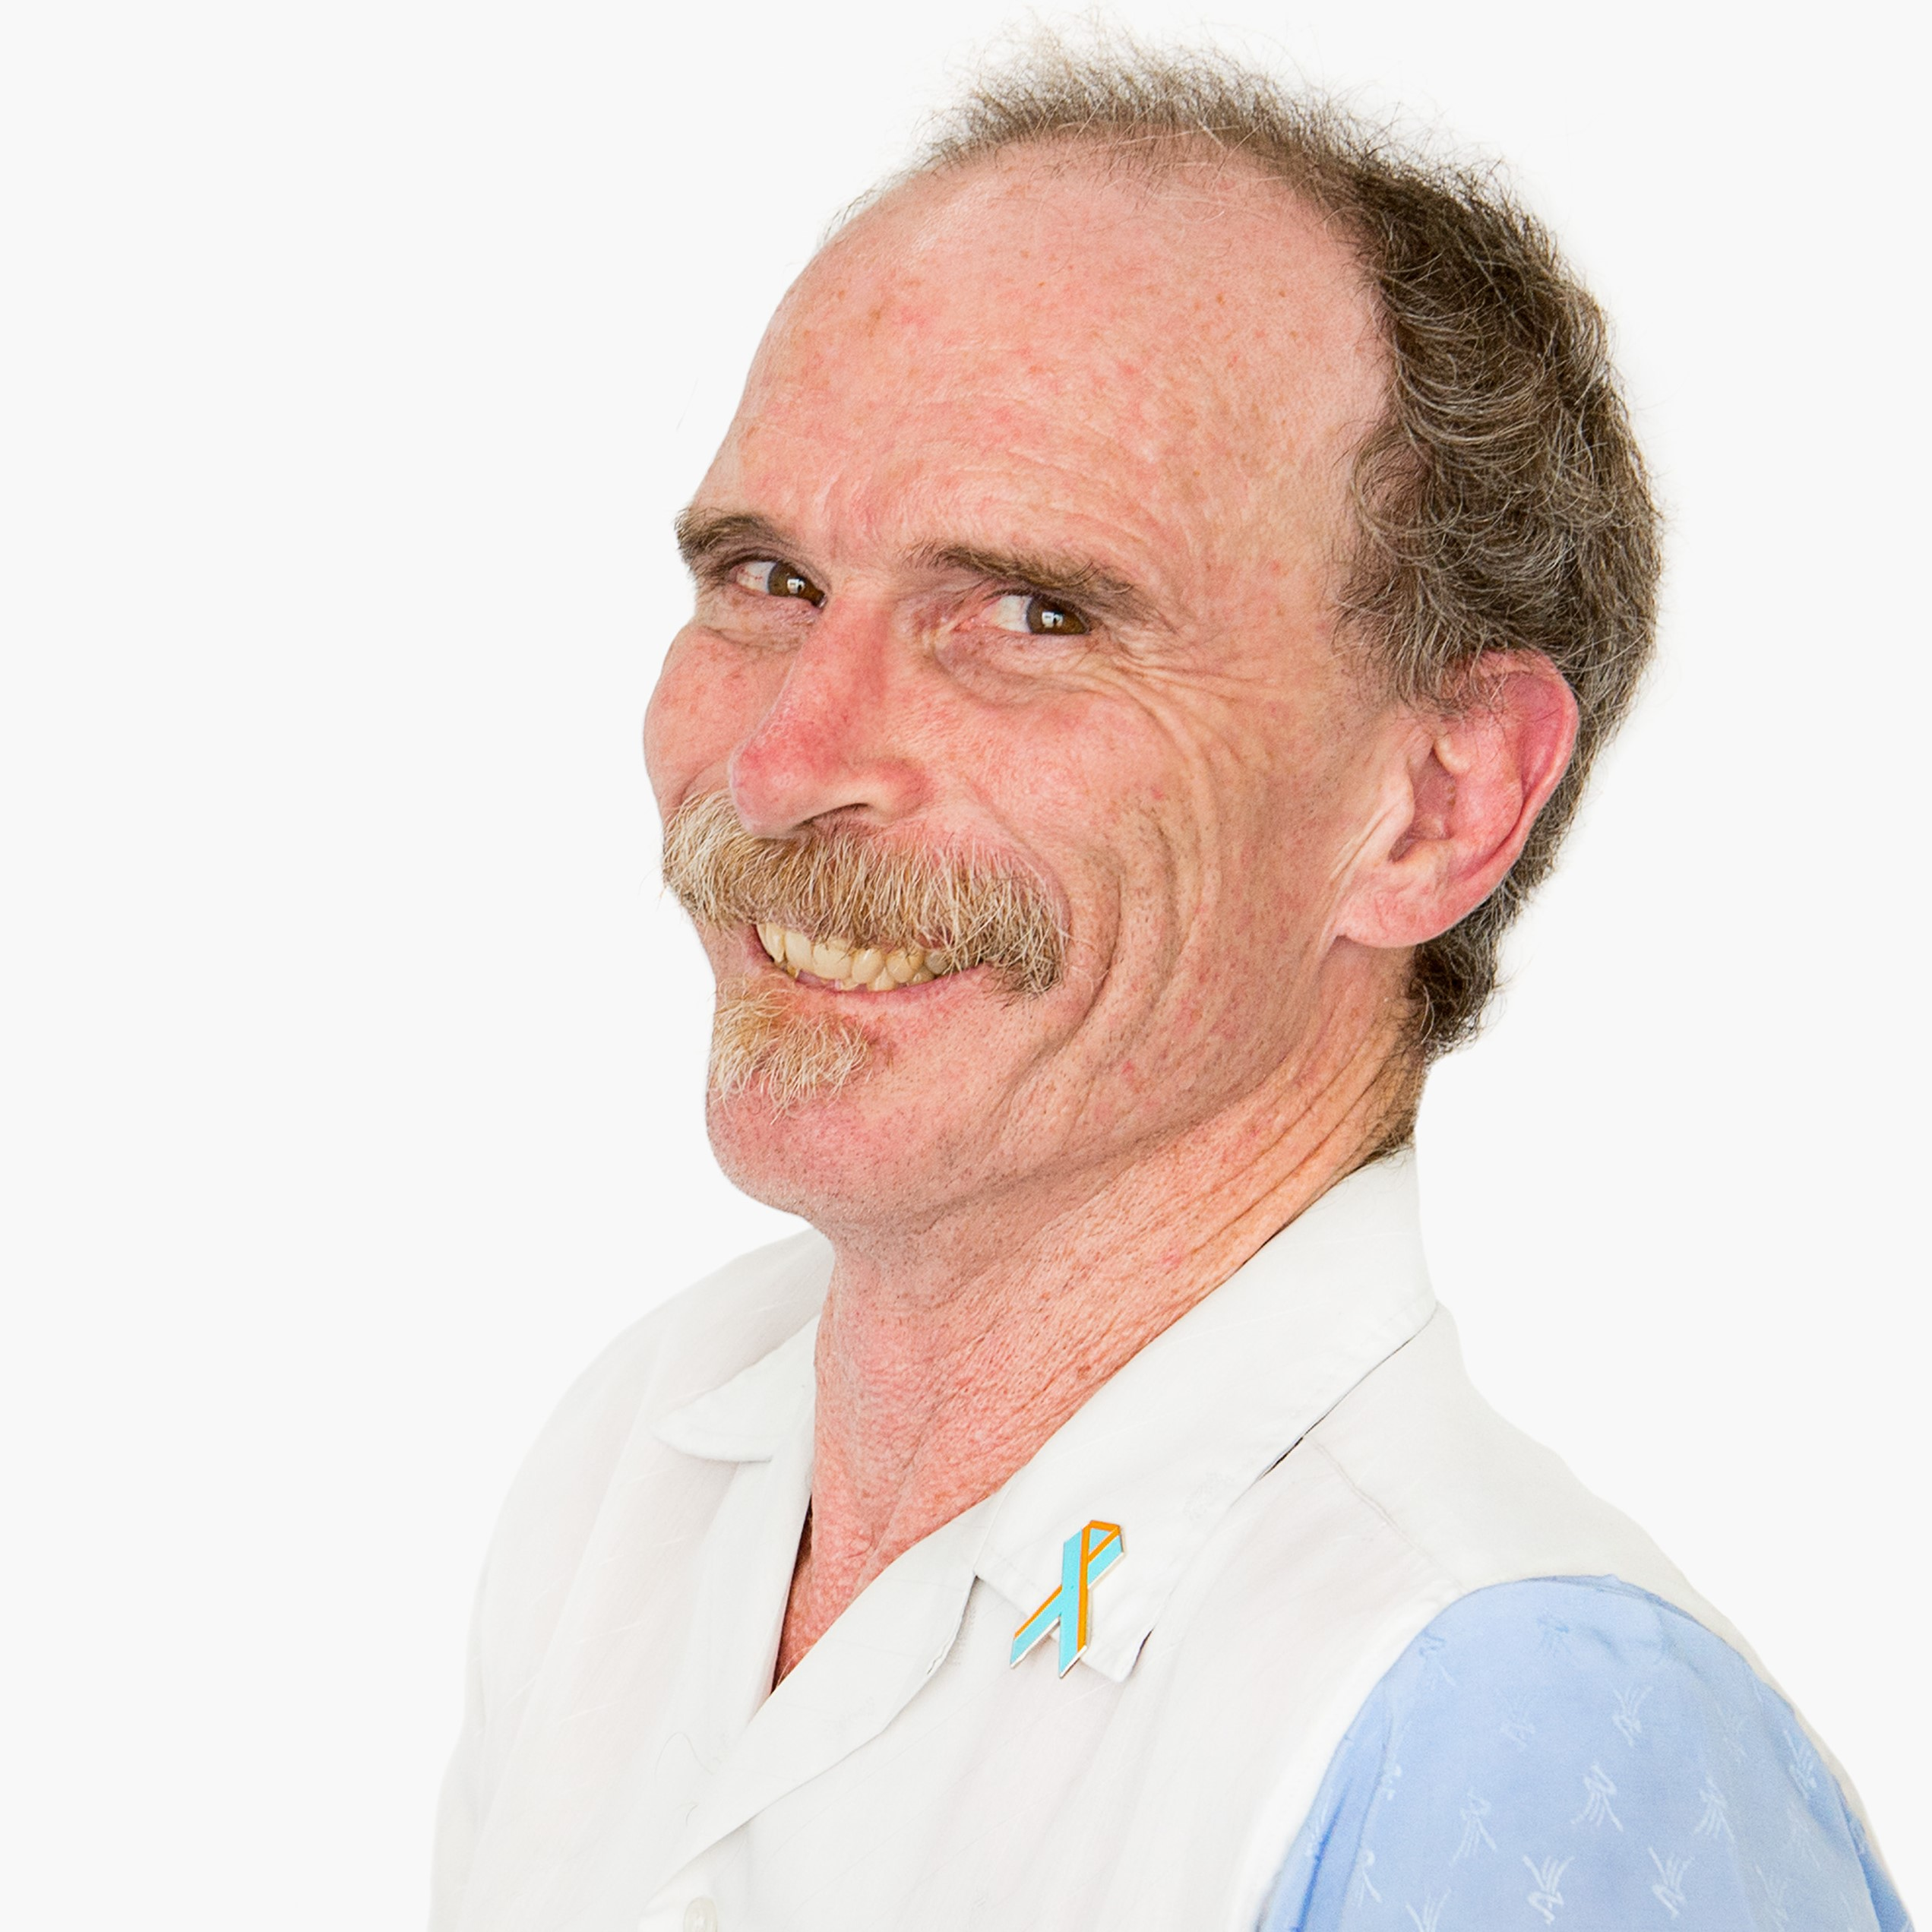 a photo of QDN board member John MacPherson, wearing a white and light blue polo and smiling at the camera.